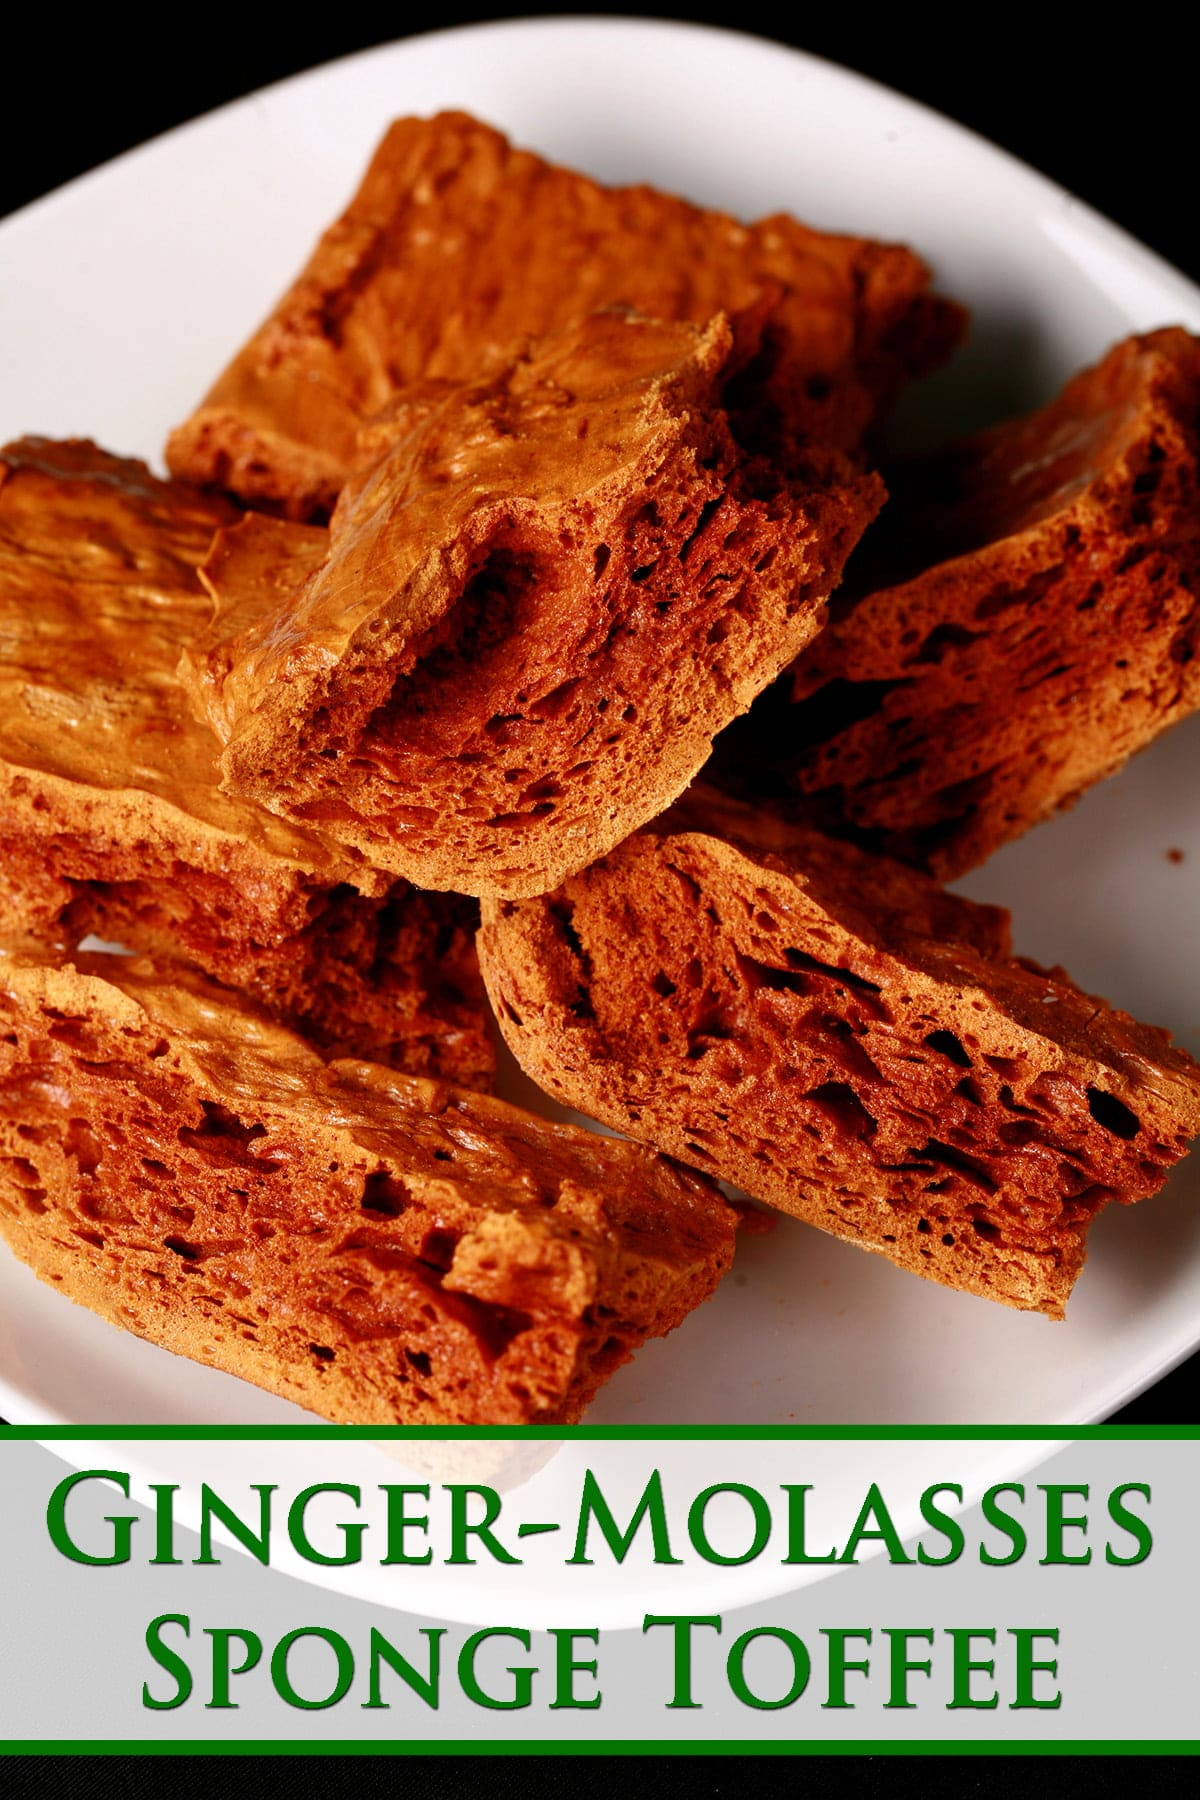 Chunks of deep amber coloured sponge toffee are piled on a small white plate.